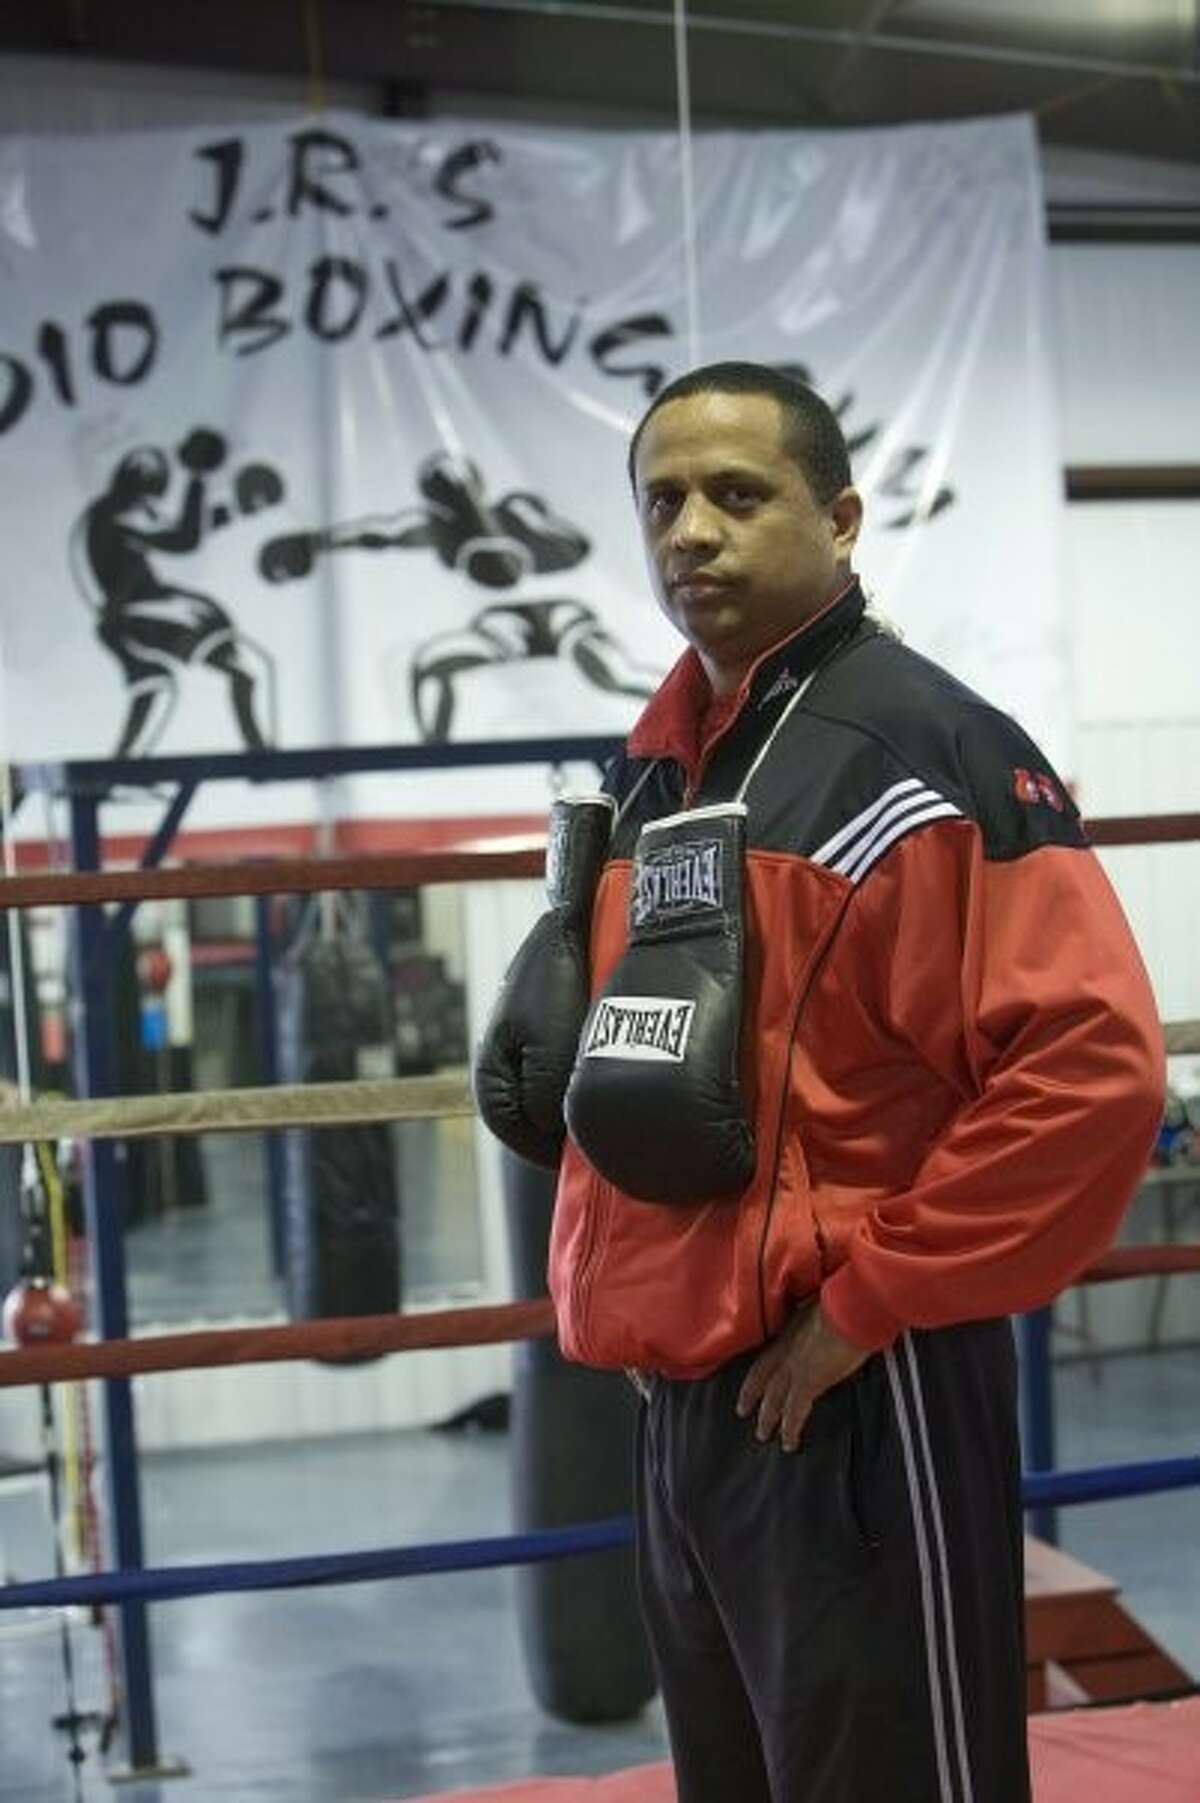 Ramon Sosa, 48, a retired boxer who went on to open a gym in The Woodlands, says nothing prepared him for the news that his wife allegedly tried to hire a hit man to kill him.